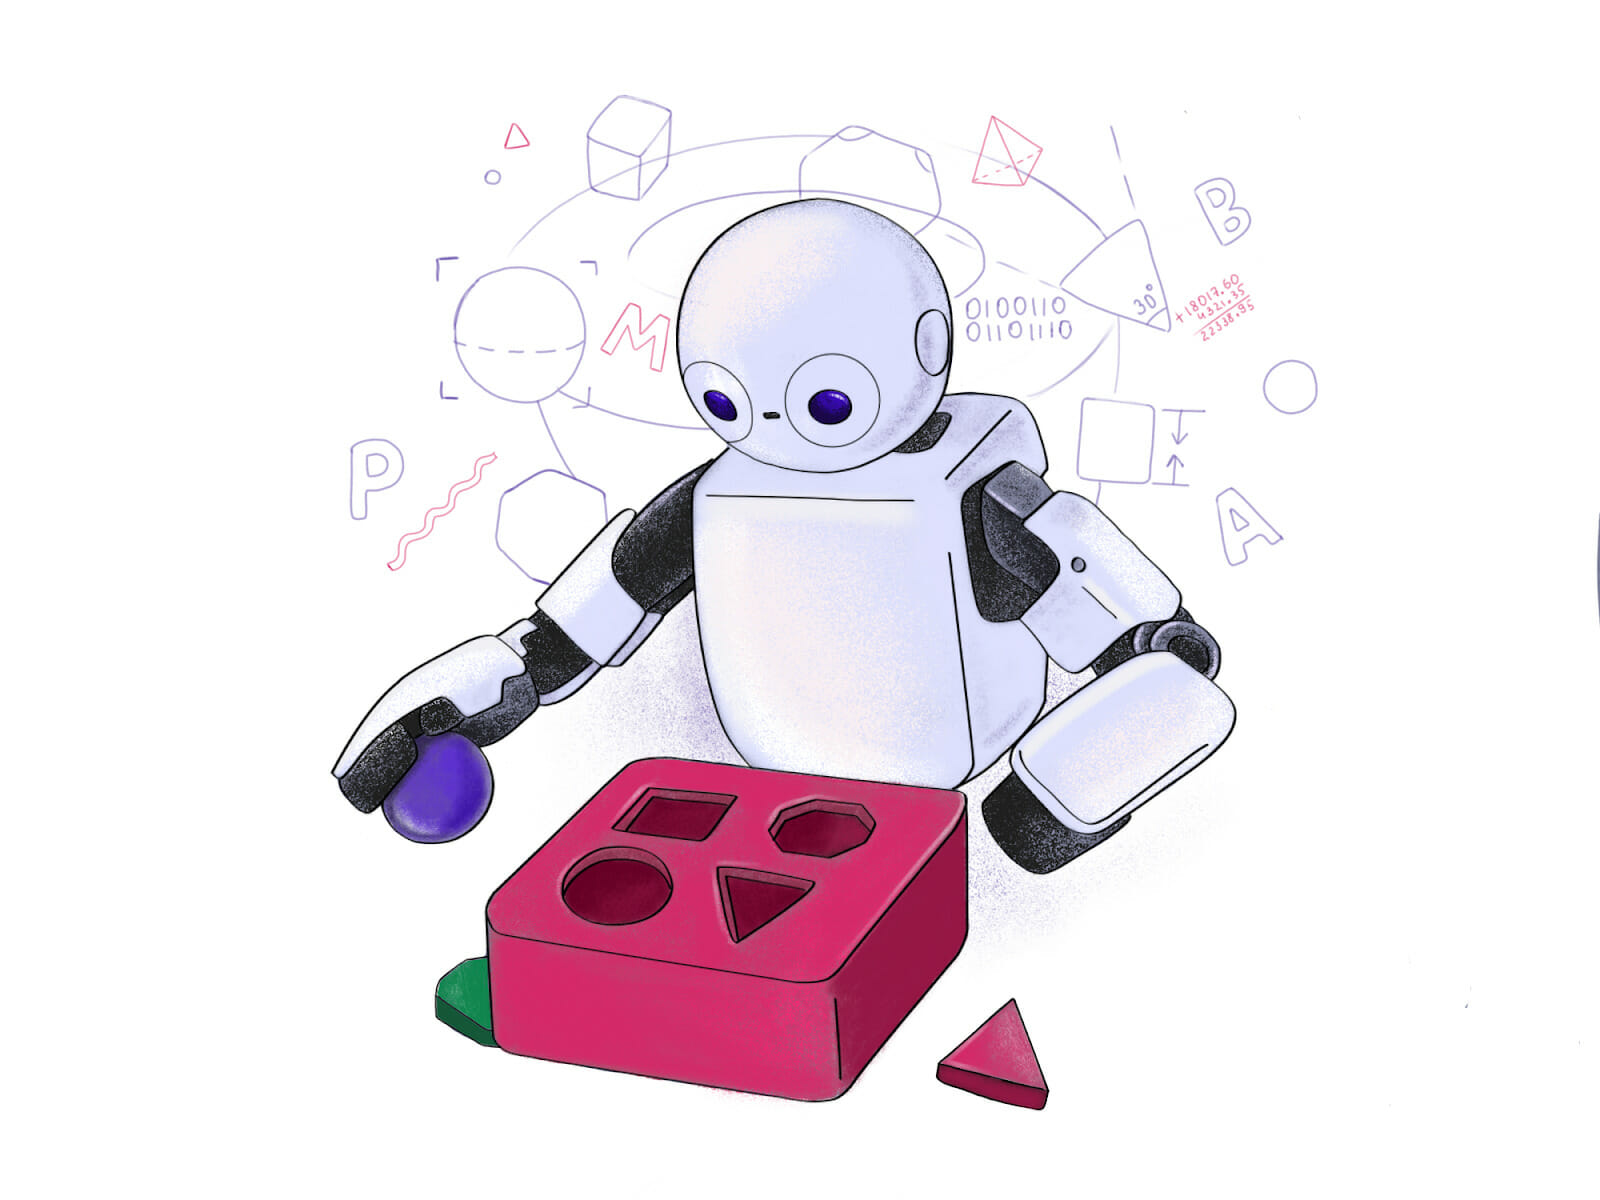 Chatbot Technology and How Does it Workin Business 2